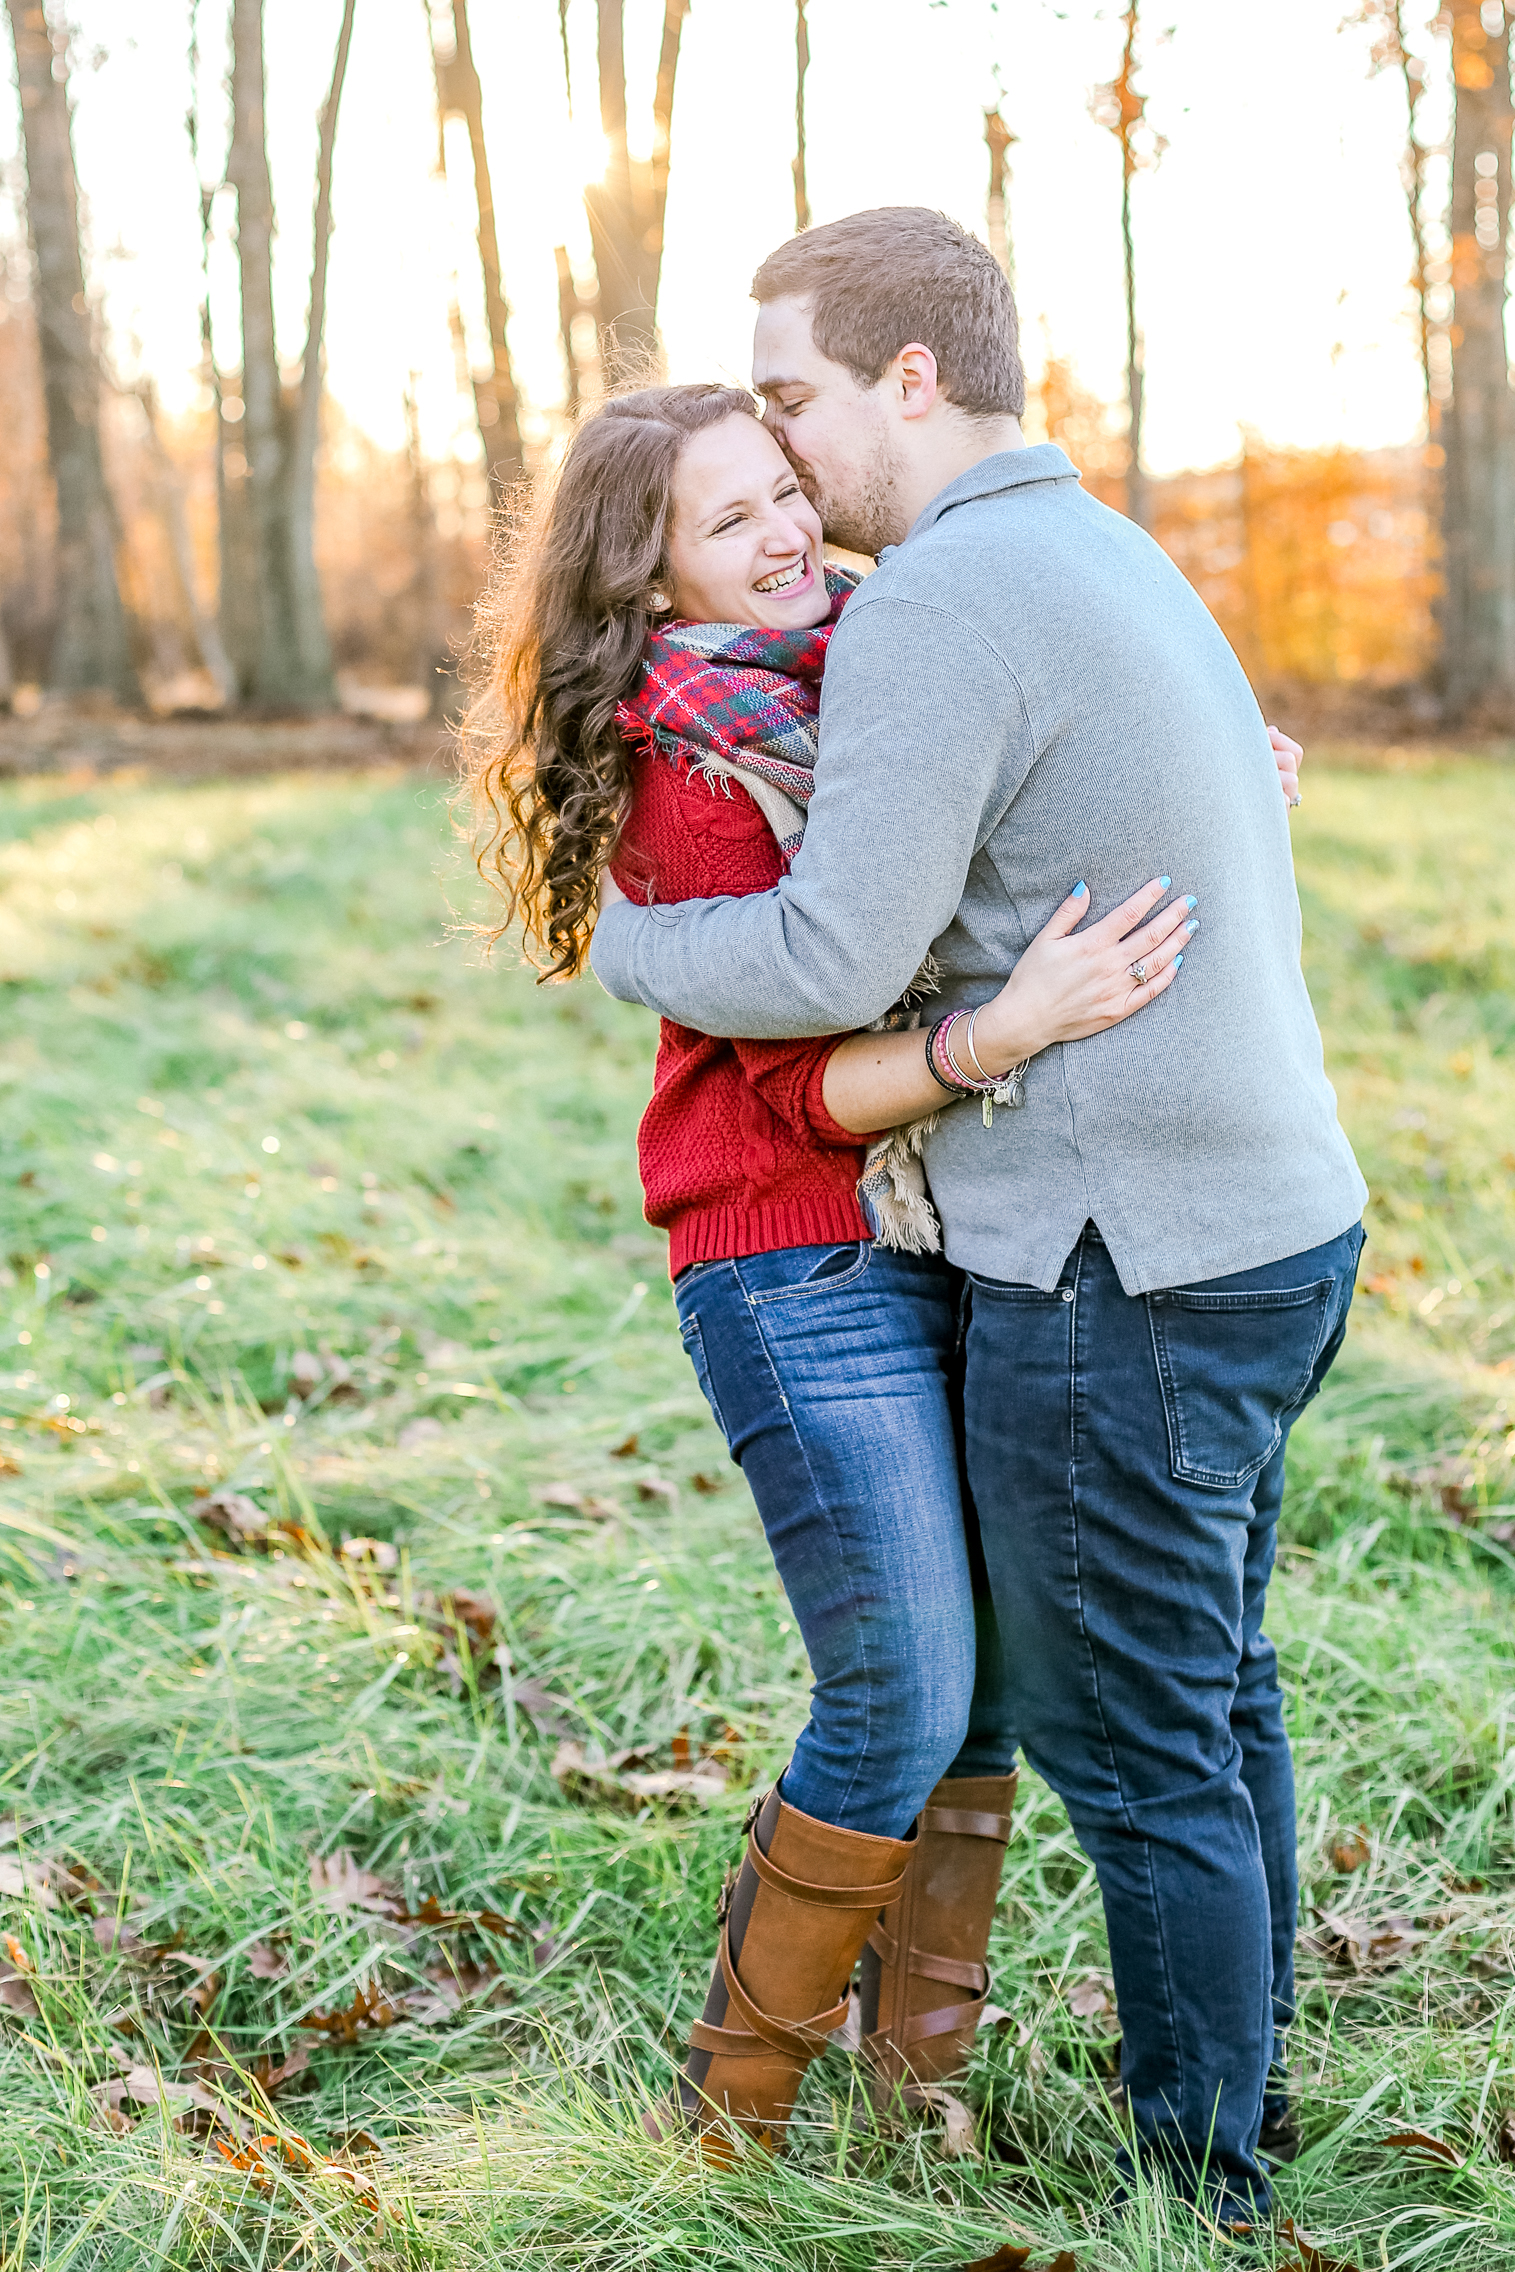 Bucks county Peace Valley Park Doylestown Lehigh Valley fall windy engagement session wedding and lifestyle photographer Lytle Photo Co (57 of 109).jpg